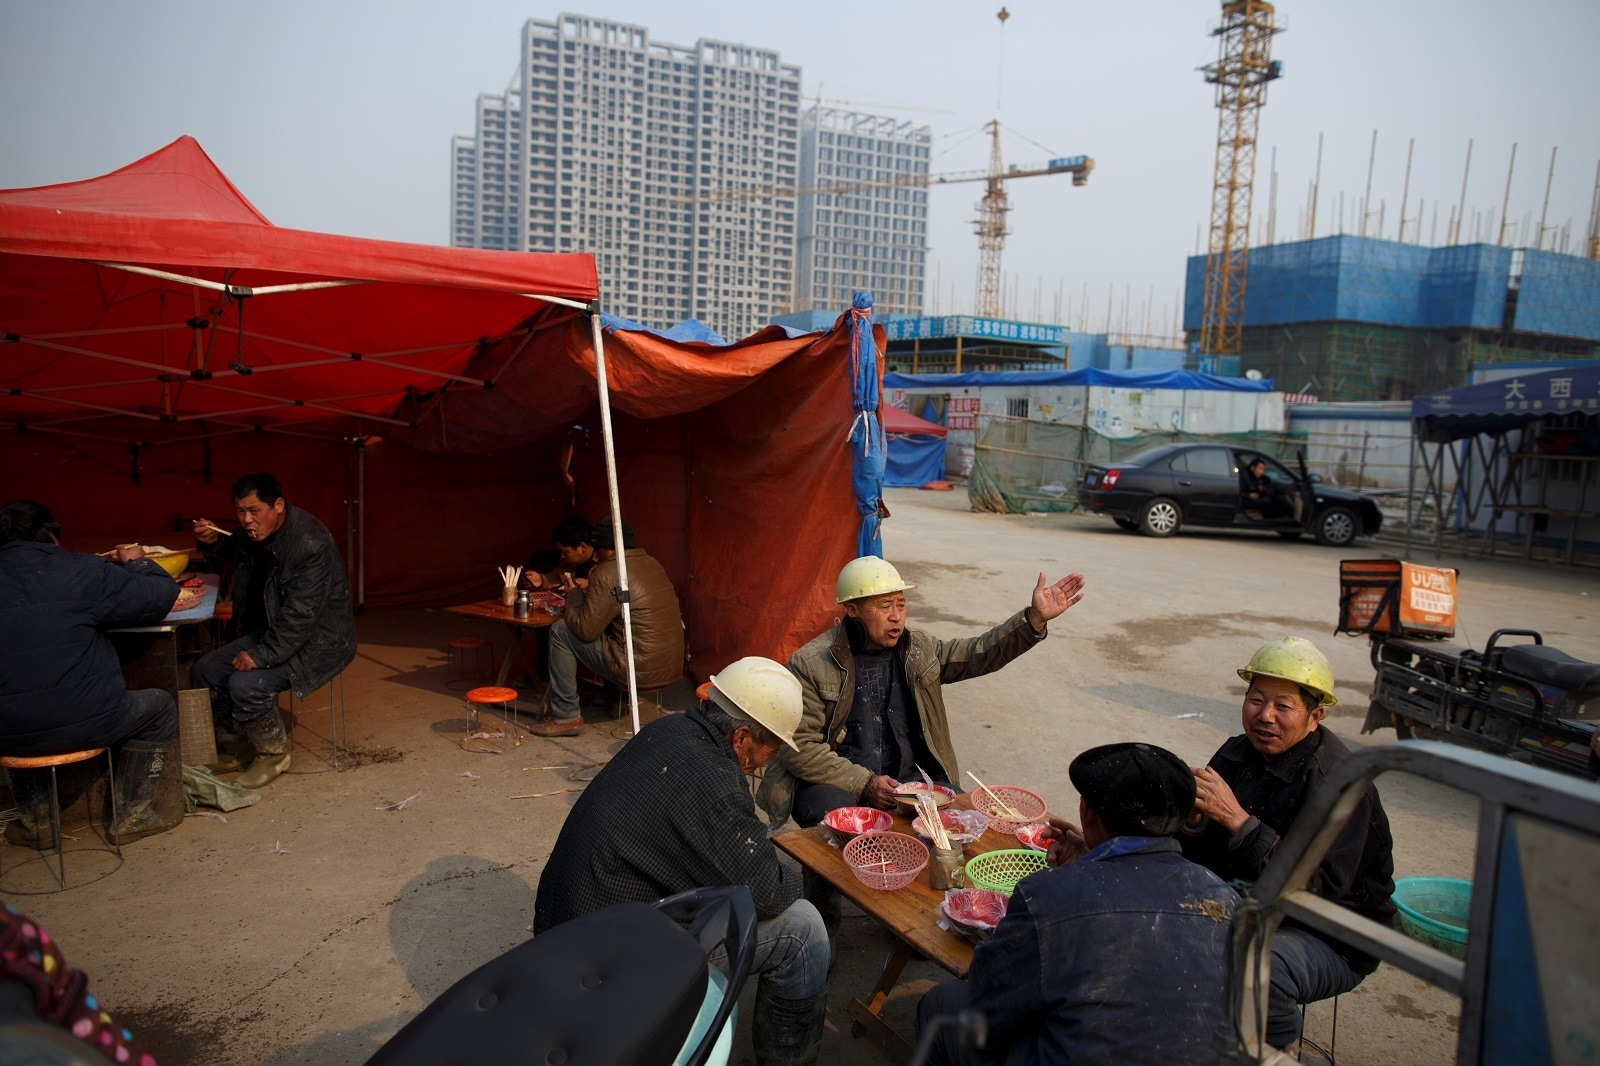 Workers eat lunch near the construction site of apartment buildings near the new stadium in Zhengzhou, Henan province, China January 19, 2019. REUTERS/Thomas Peter